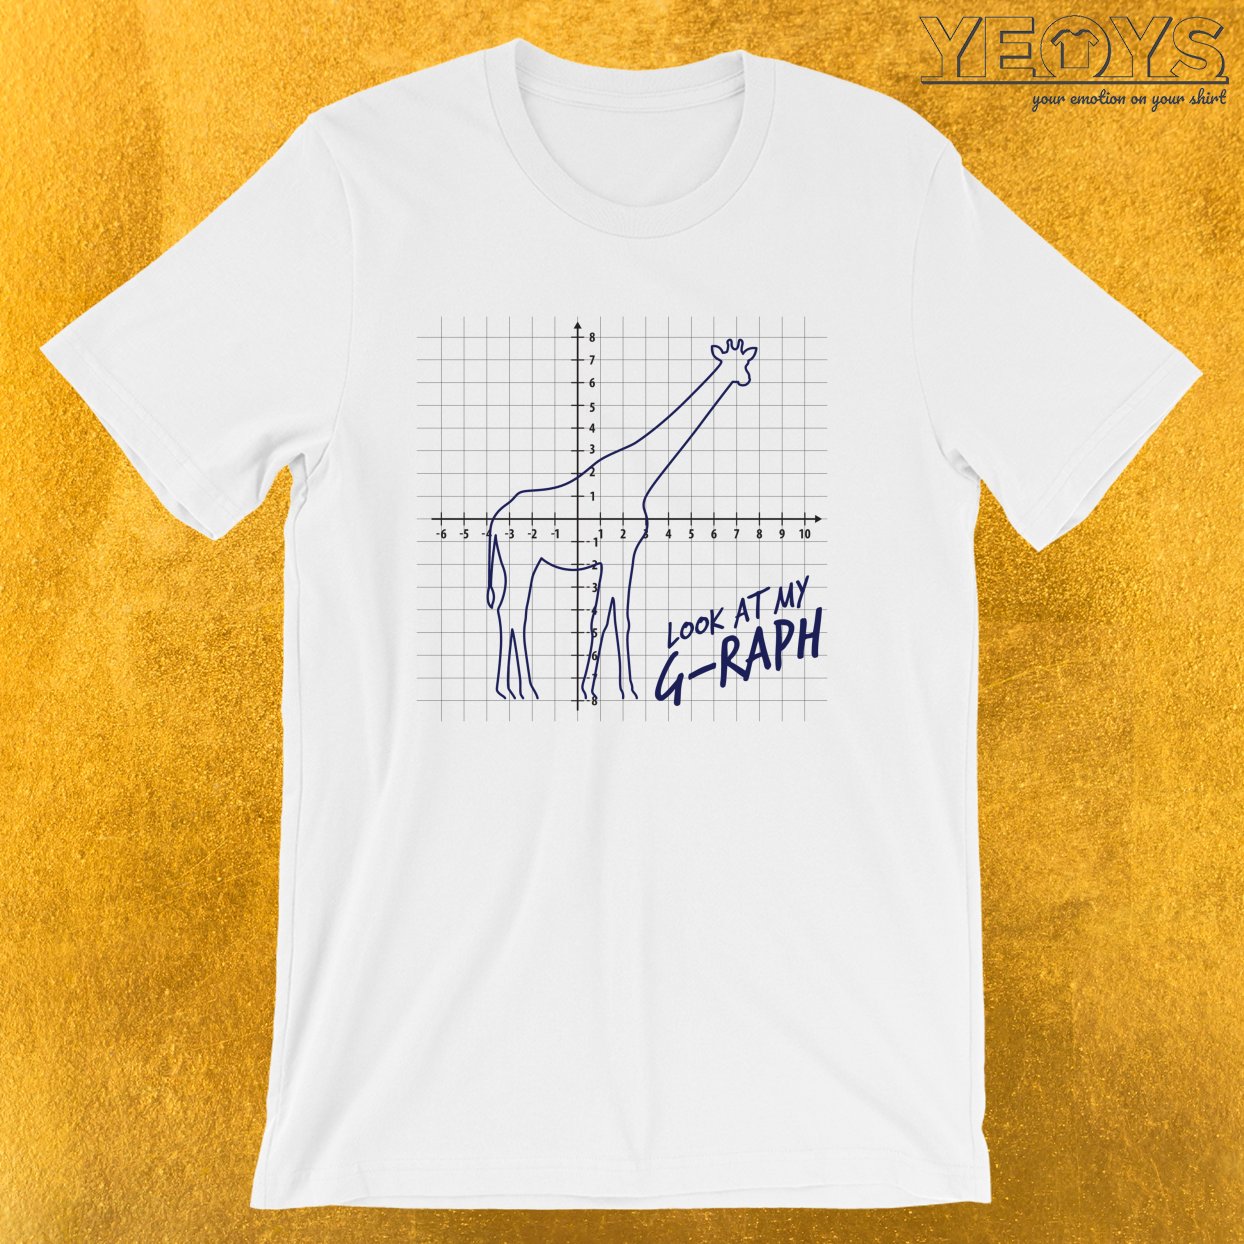 Look At My Graph – Giraffe Pun Tee